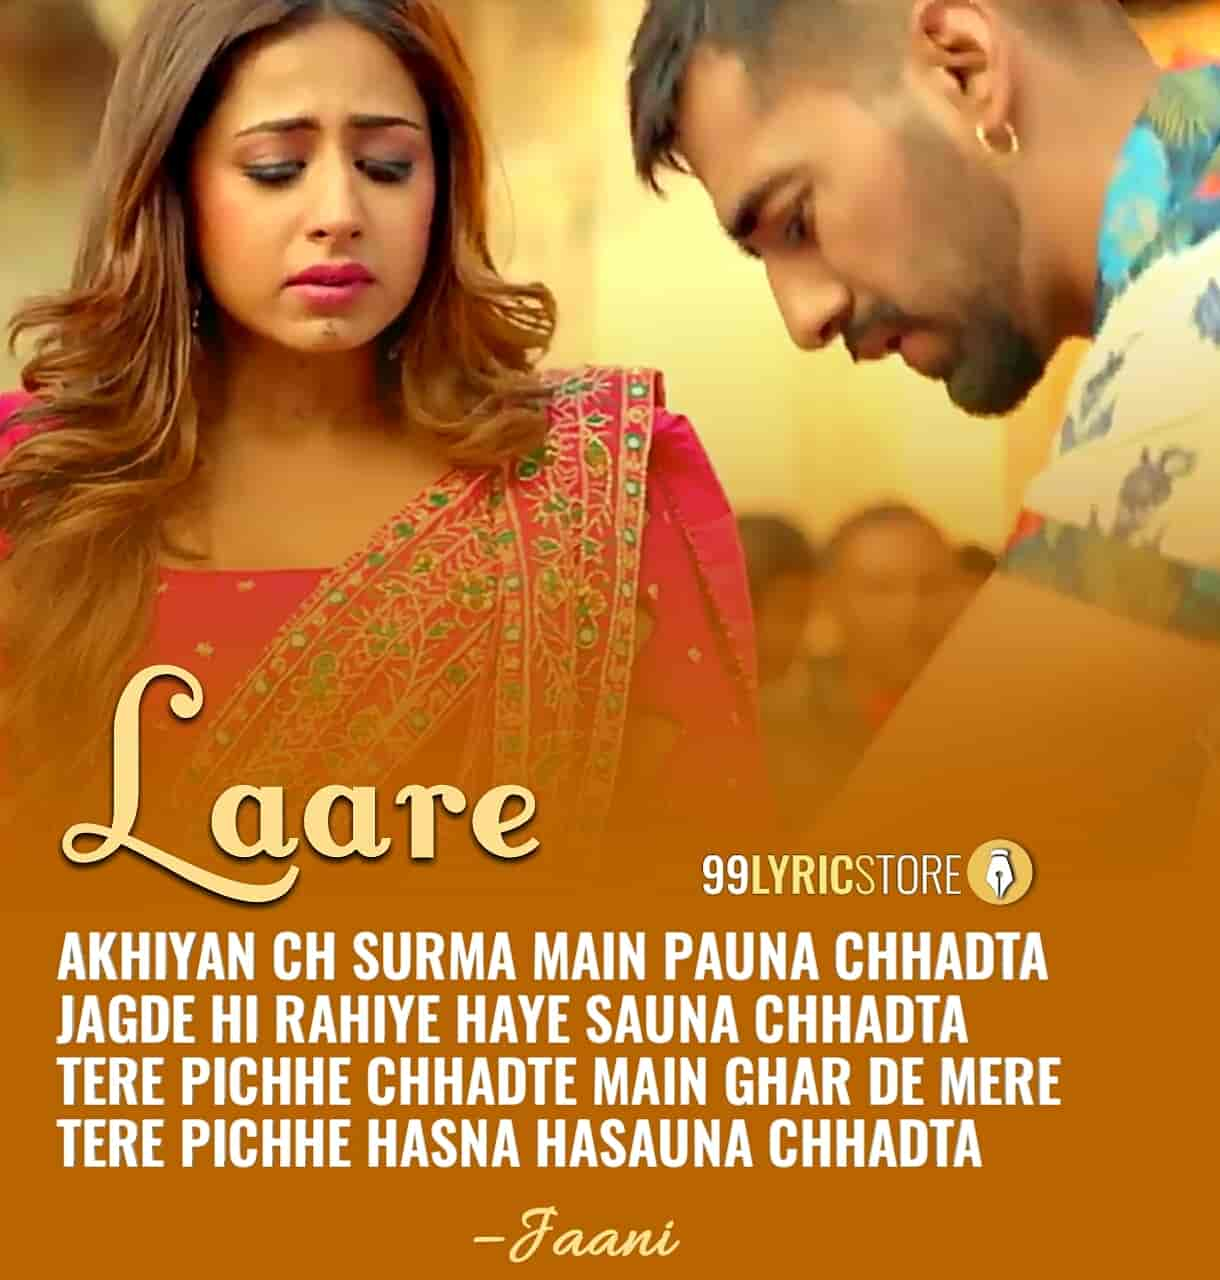 Laare Lyrics image Maninder Buttar and Sargun Mehta